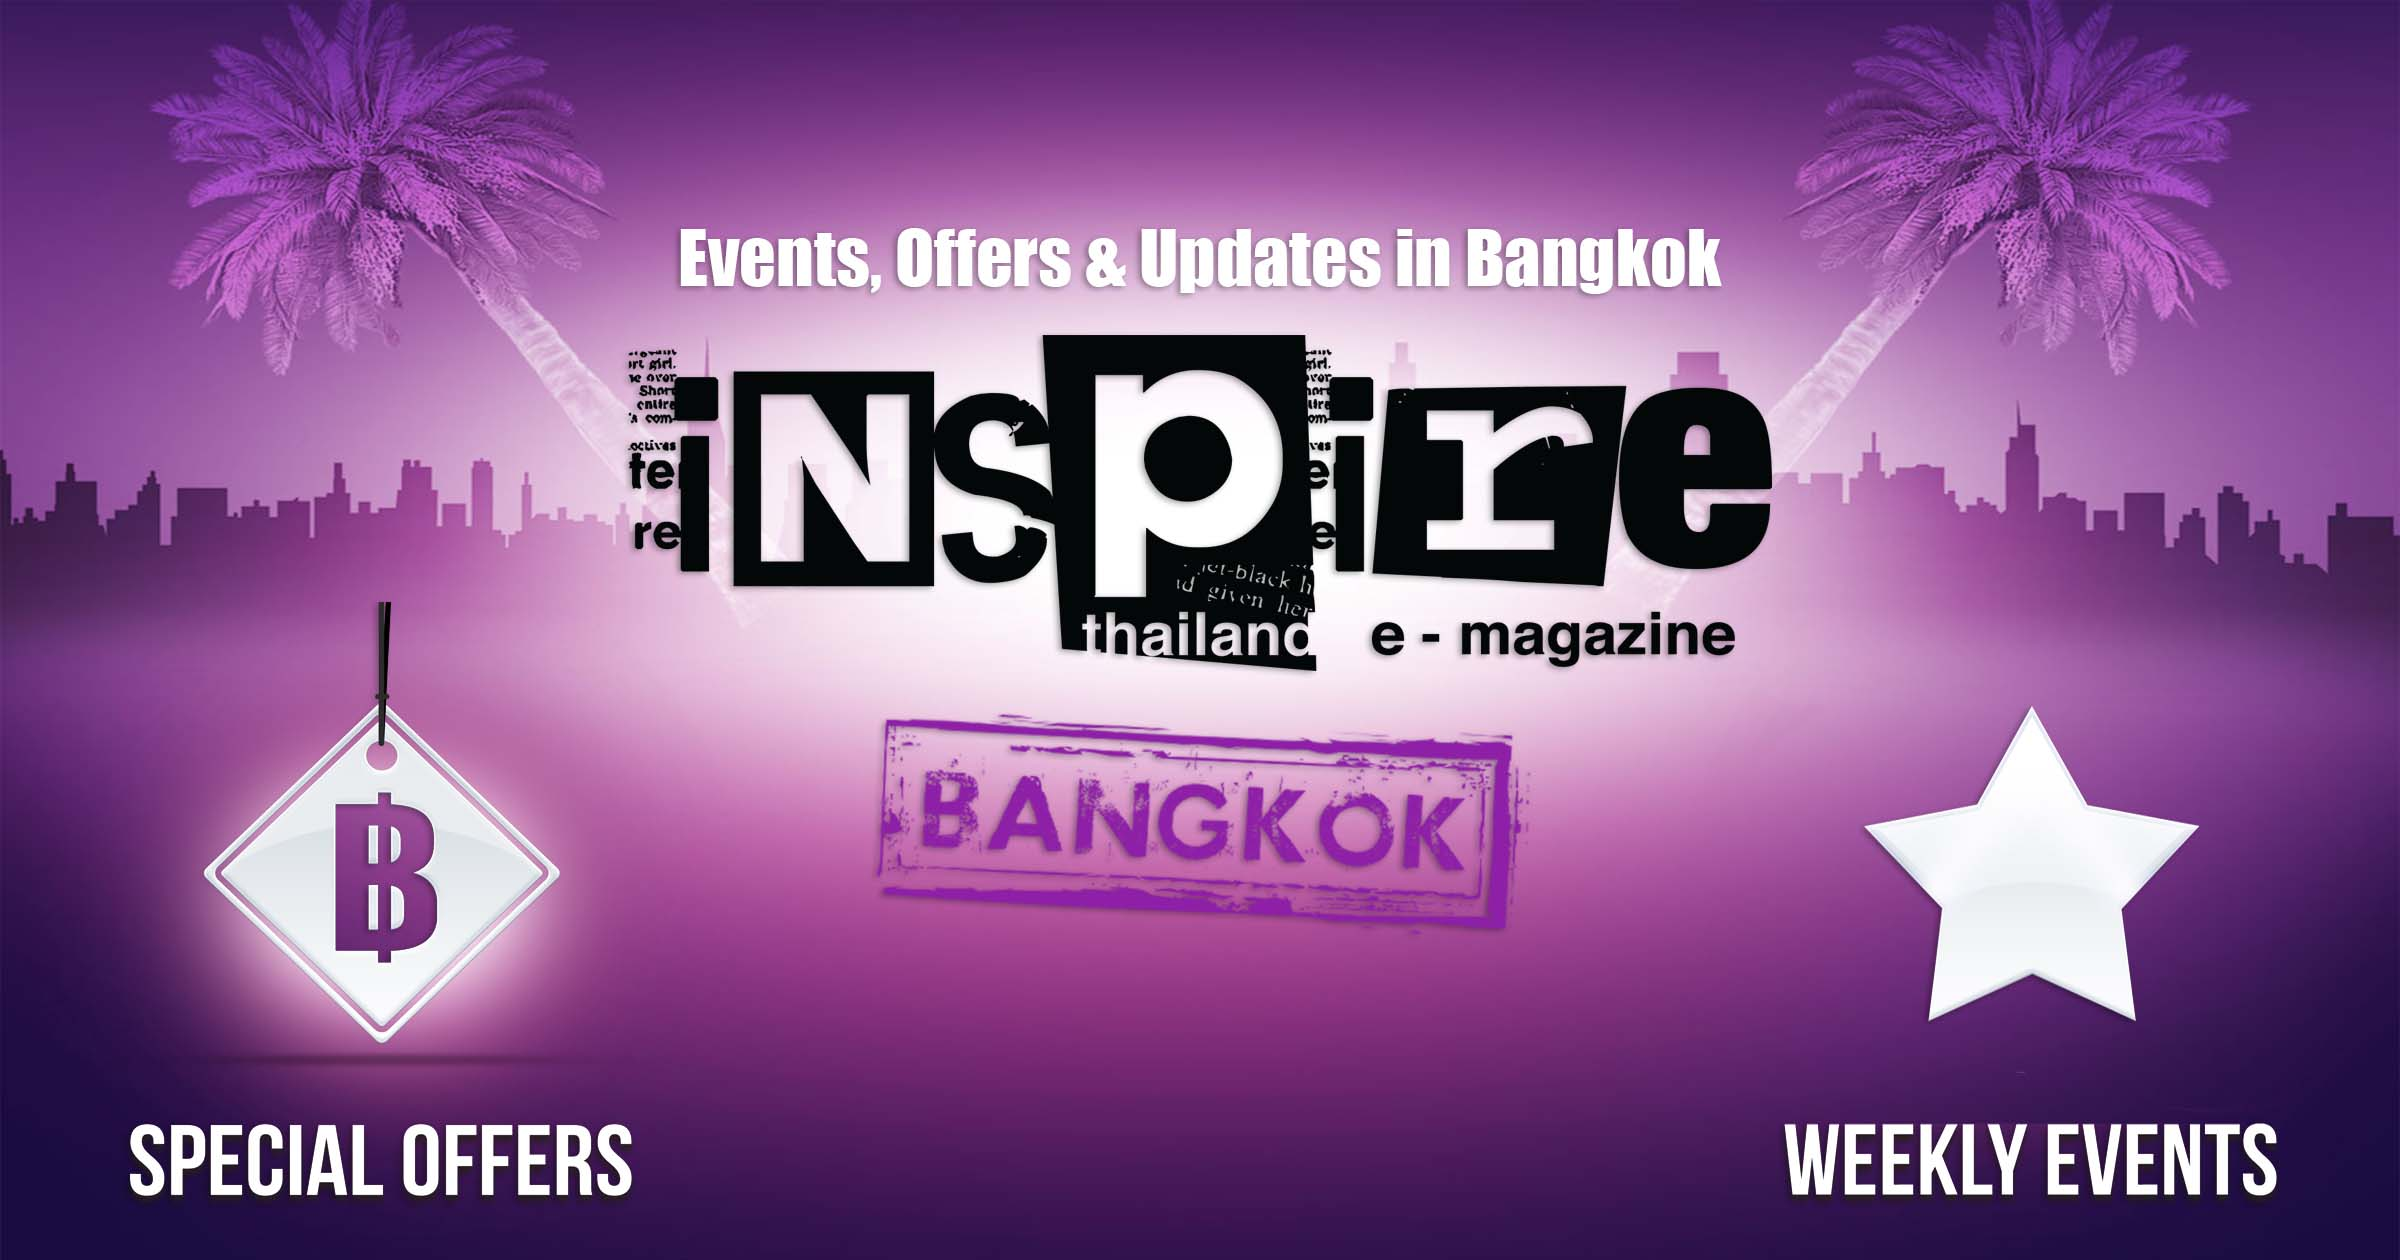 Expat speed dating Bangkok